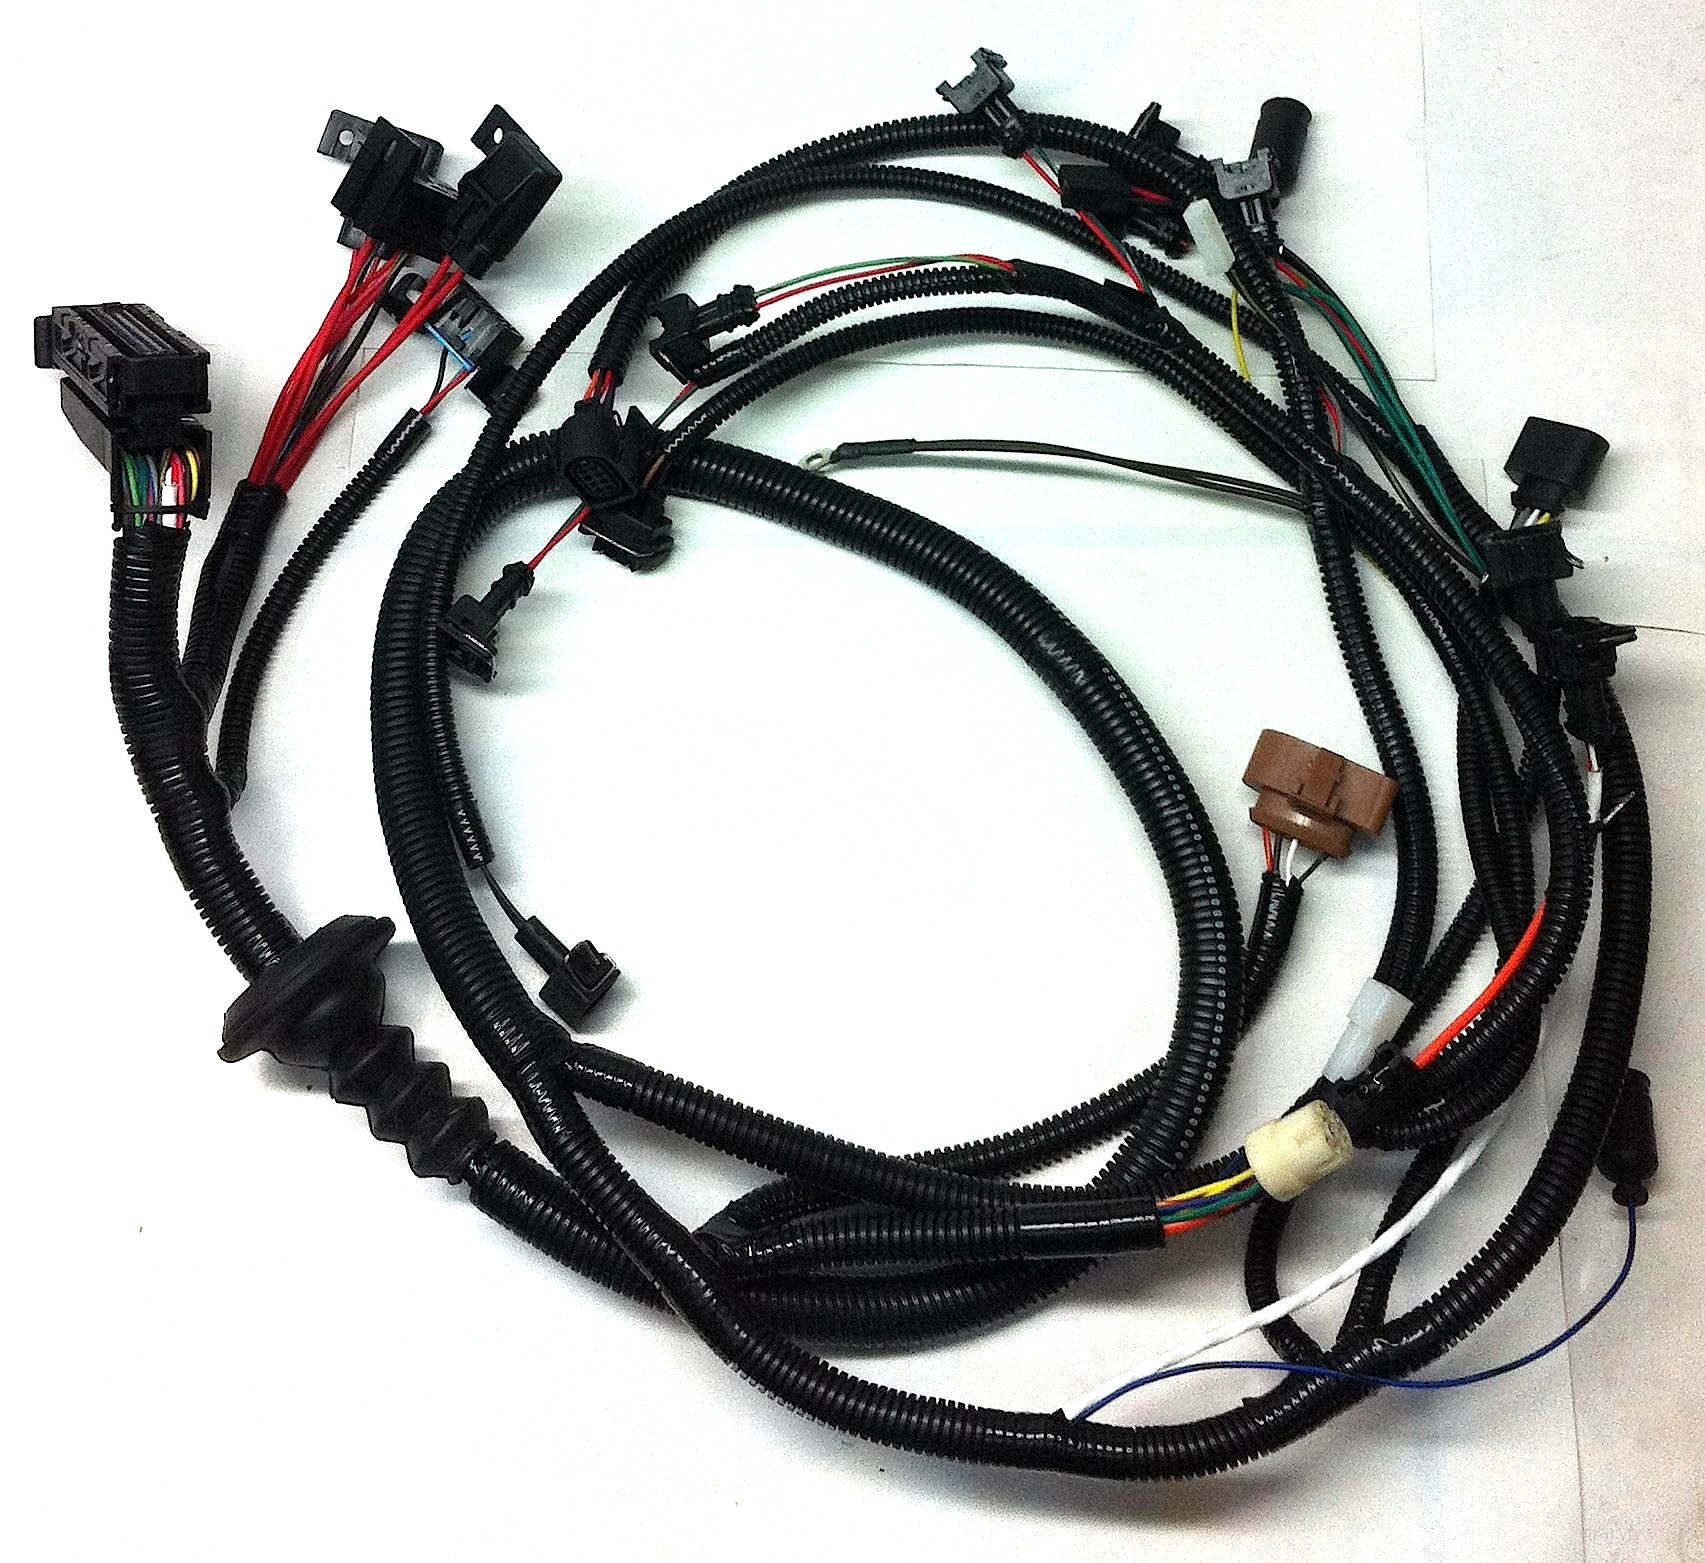 2lr tiico conversion wiring harness foreign auto supply inc rh foreignautosupply com car wiring harness manufacturers in india classic car wiring harness manufacturers uk